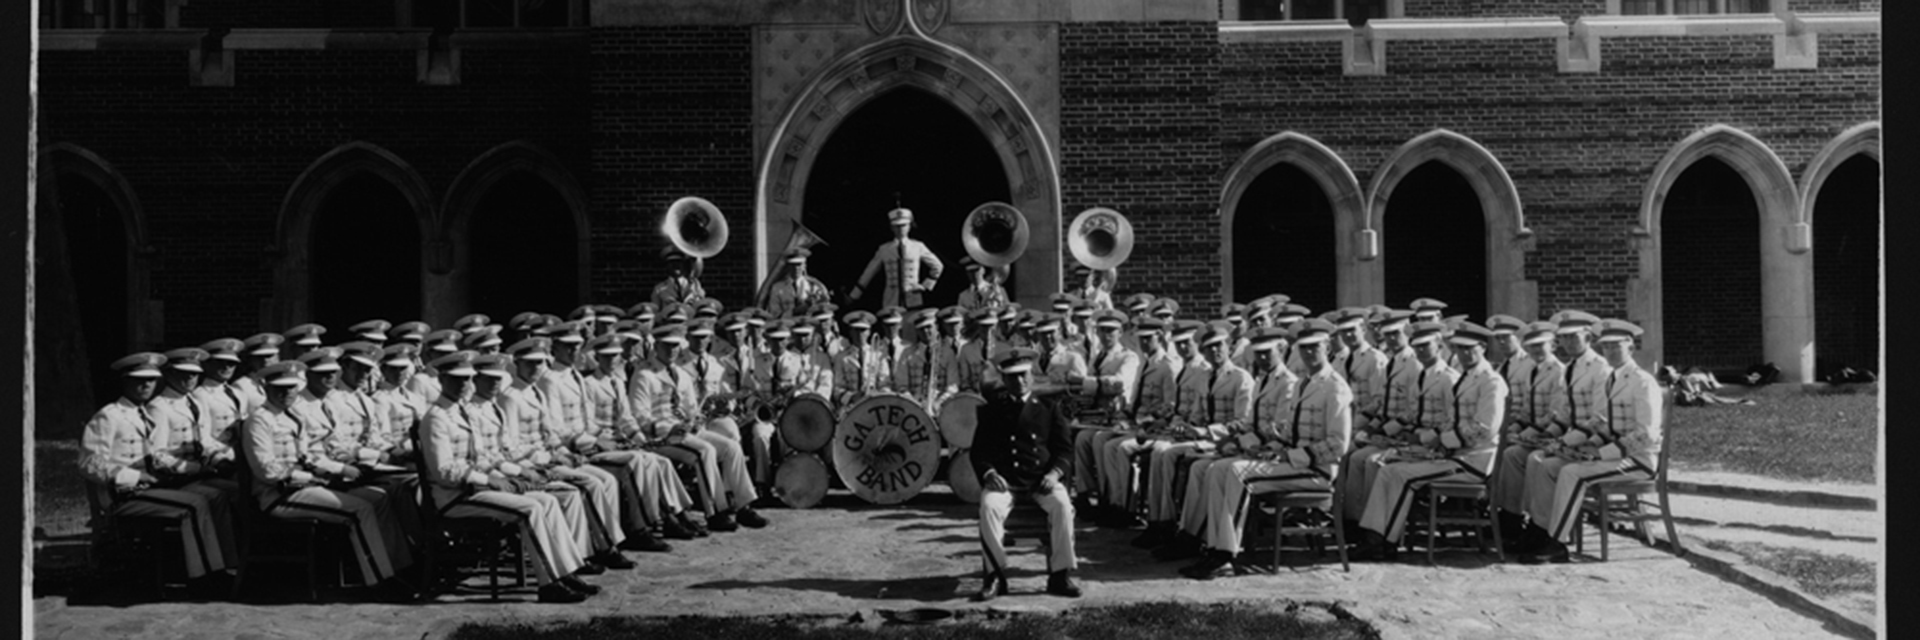 A historical black and white photo of the Georgia Tech band.